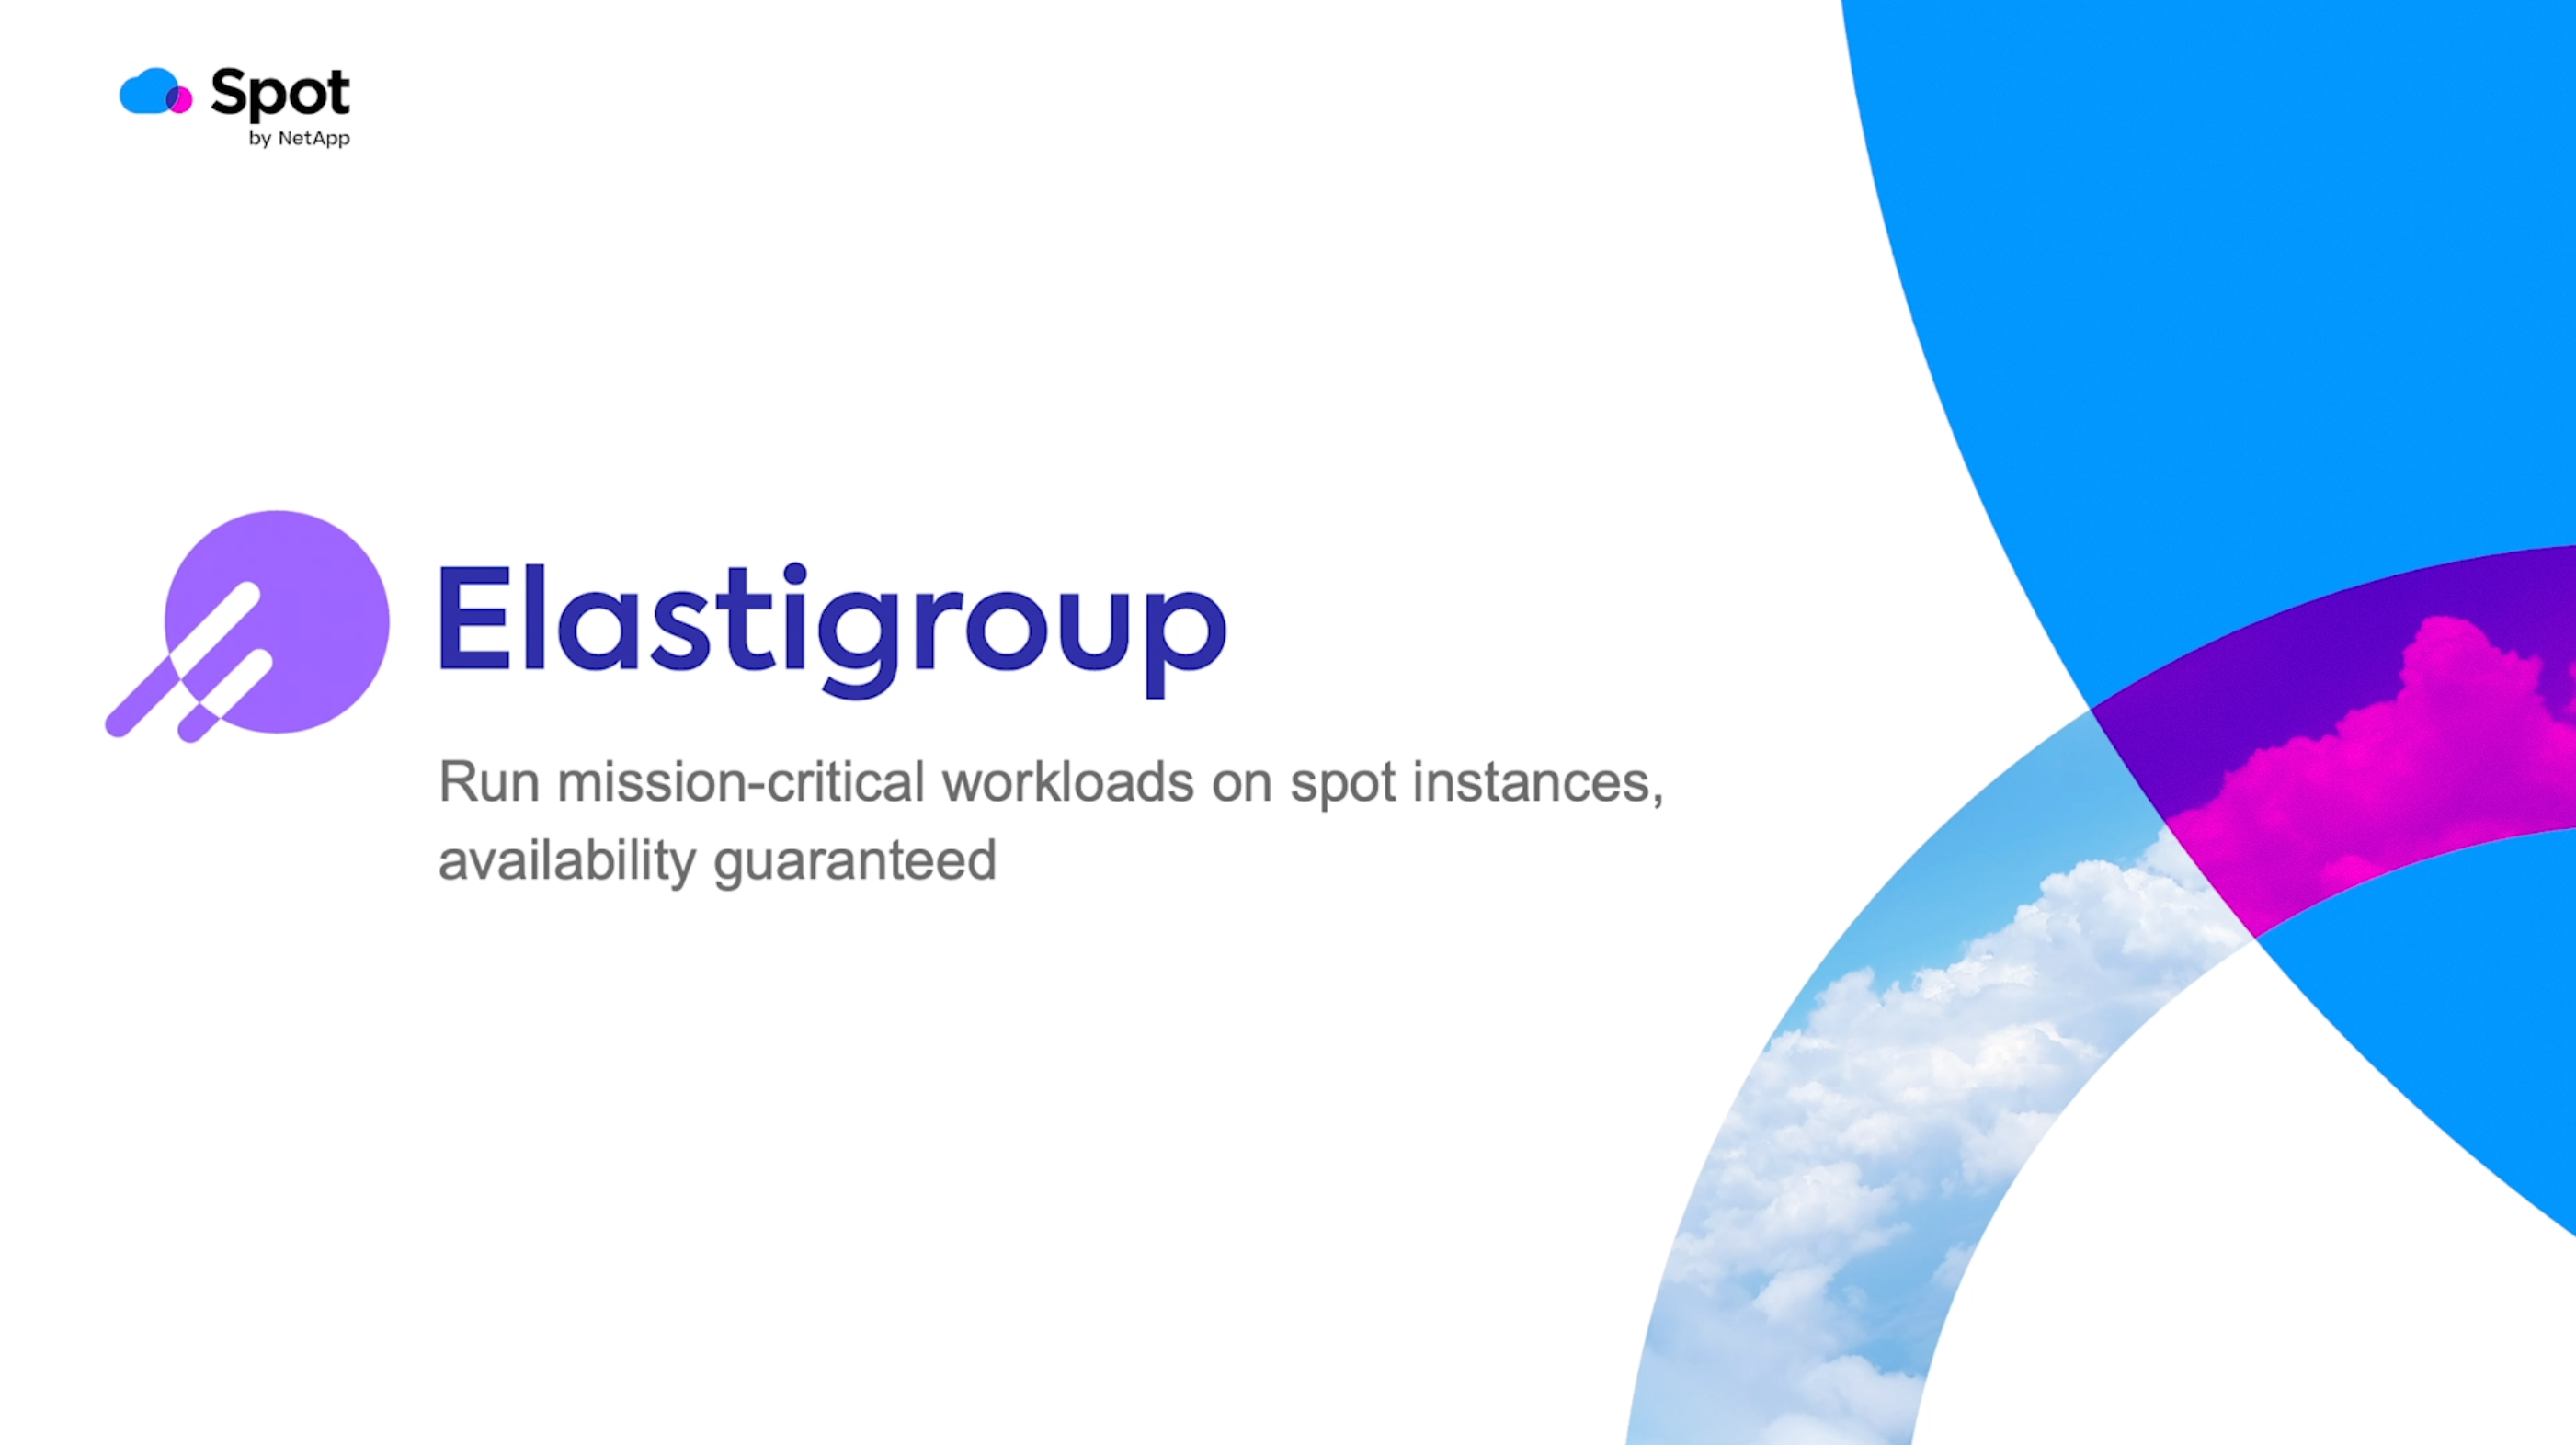 Elastigroup preview image for product demo video